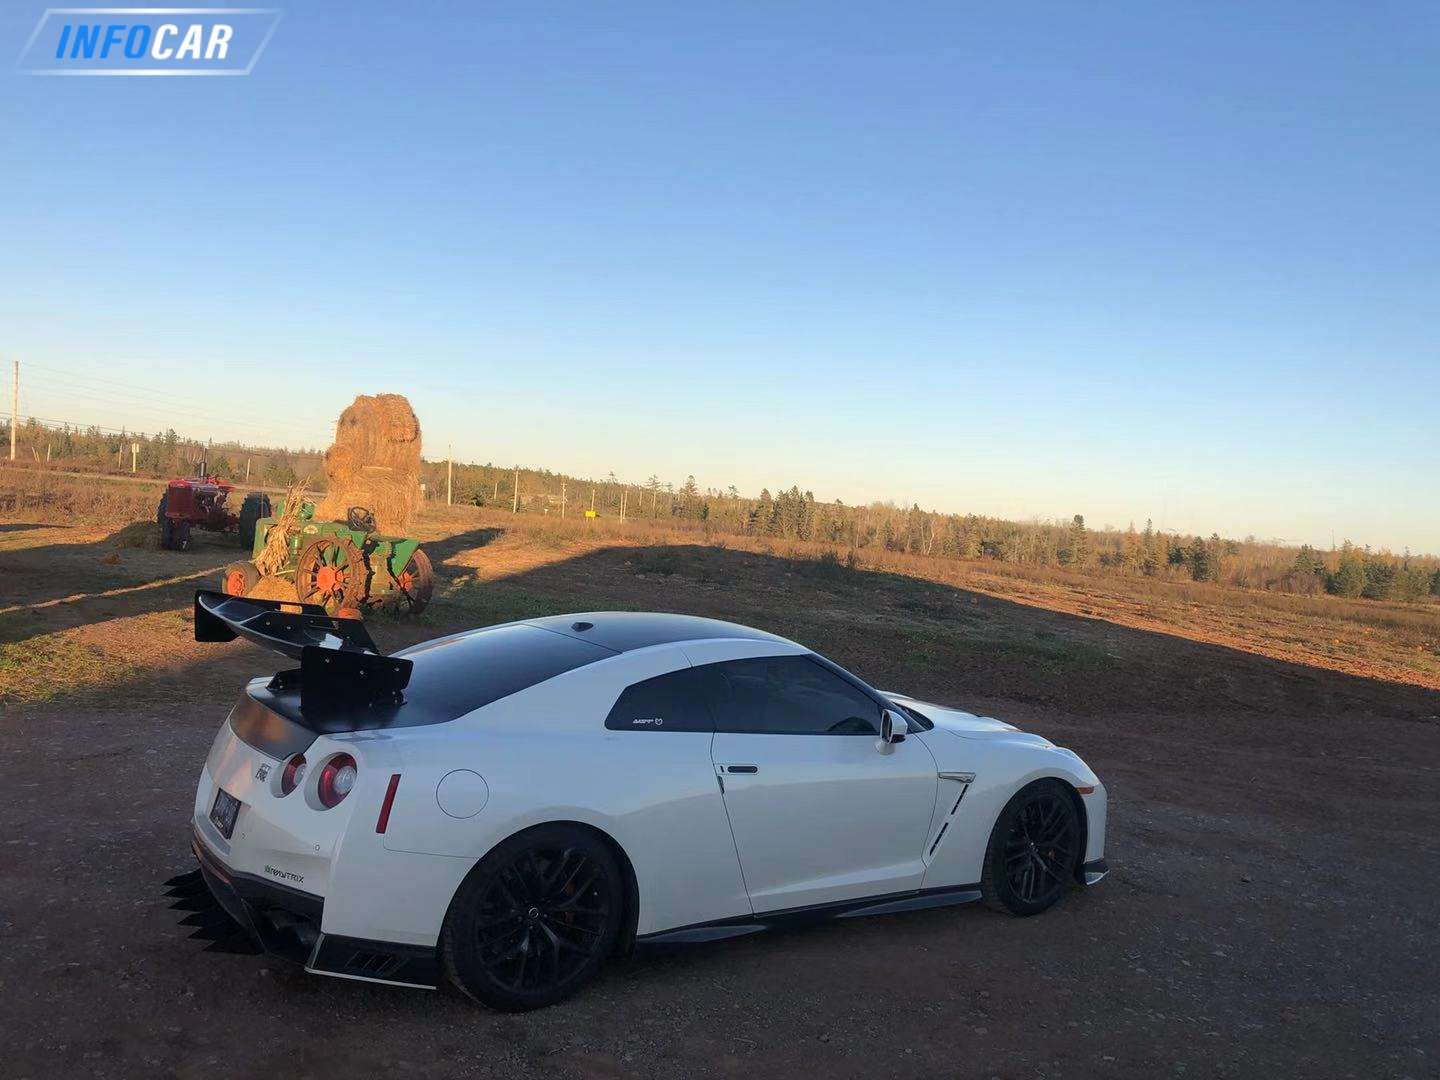 2018 Nissan GT-R  - INFOCAR - Toronto's Most Comprehensive New and Used Auto Trading Platform